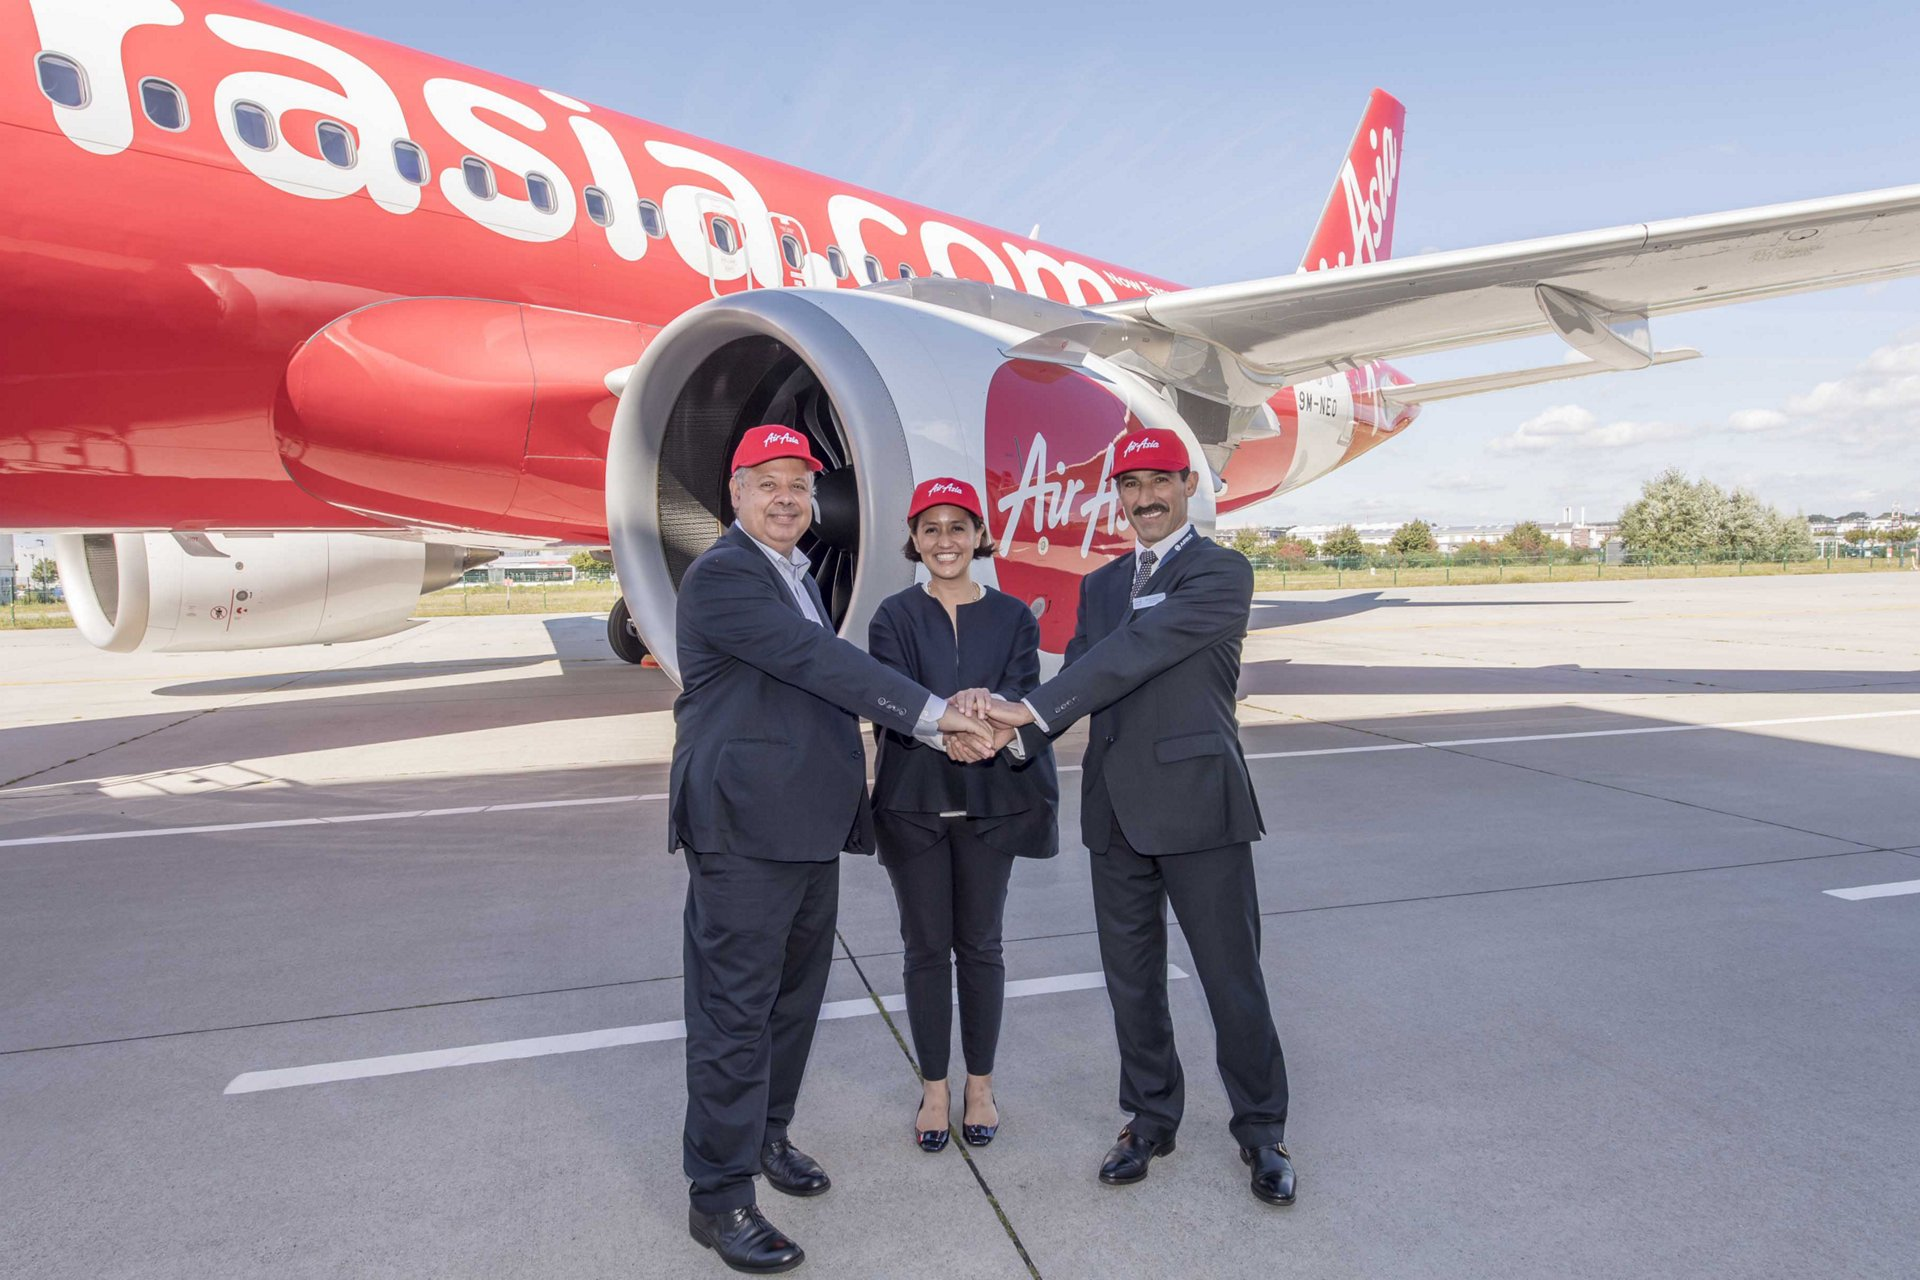 Delivery of the first AirAsia A320neo jetliner is marked in Hamburg by (from left to right): Airbus EVP Strategy and Marketing Kiran Rao– AirAsia Berhad CEO Aireen Omar– and CFM International Vice President Airbus Programs Bruno Castola